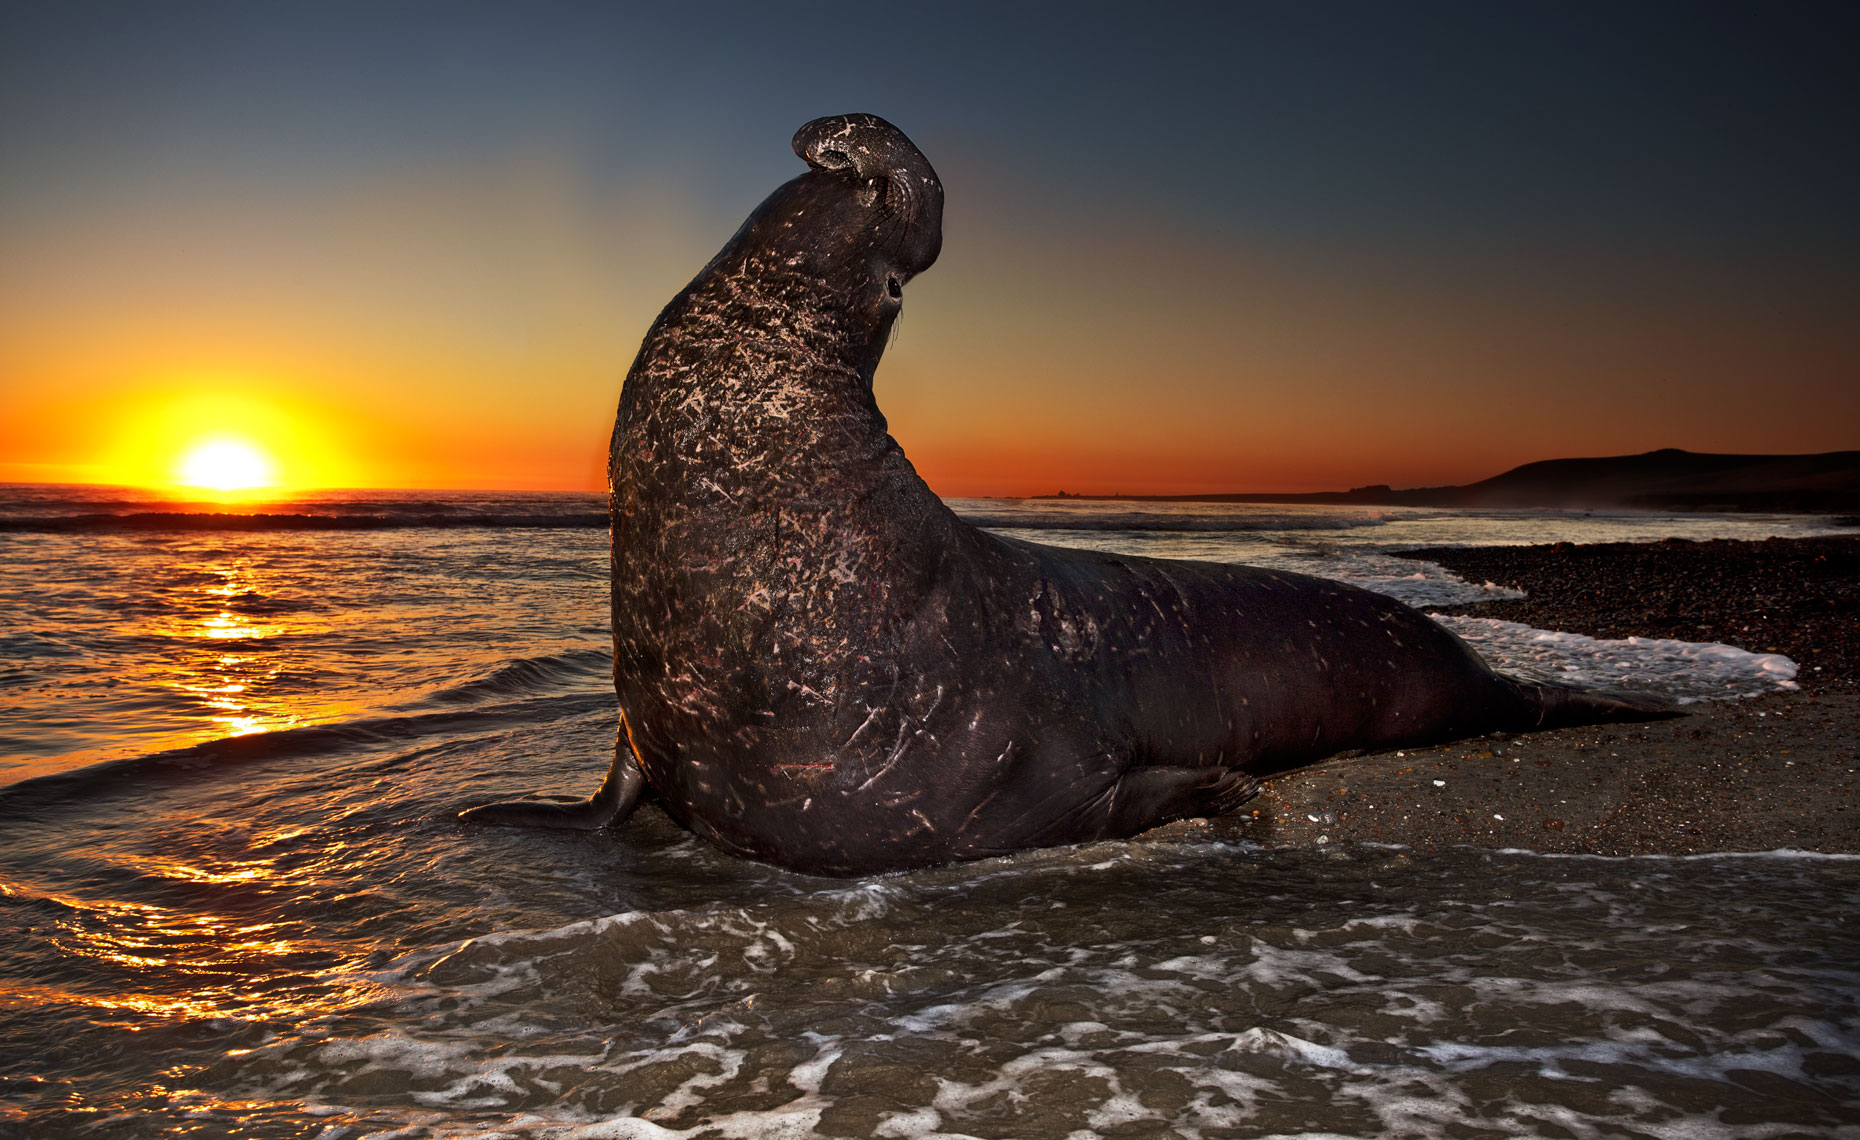 Elephant-seals-feb11_661-659-4W.jpg